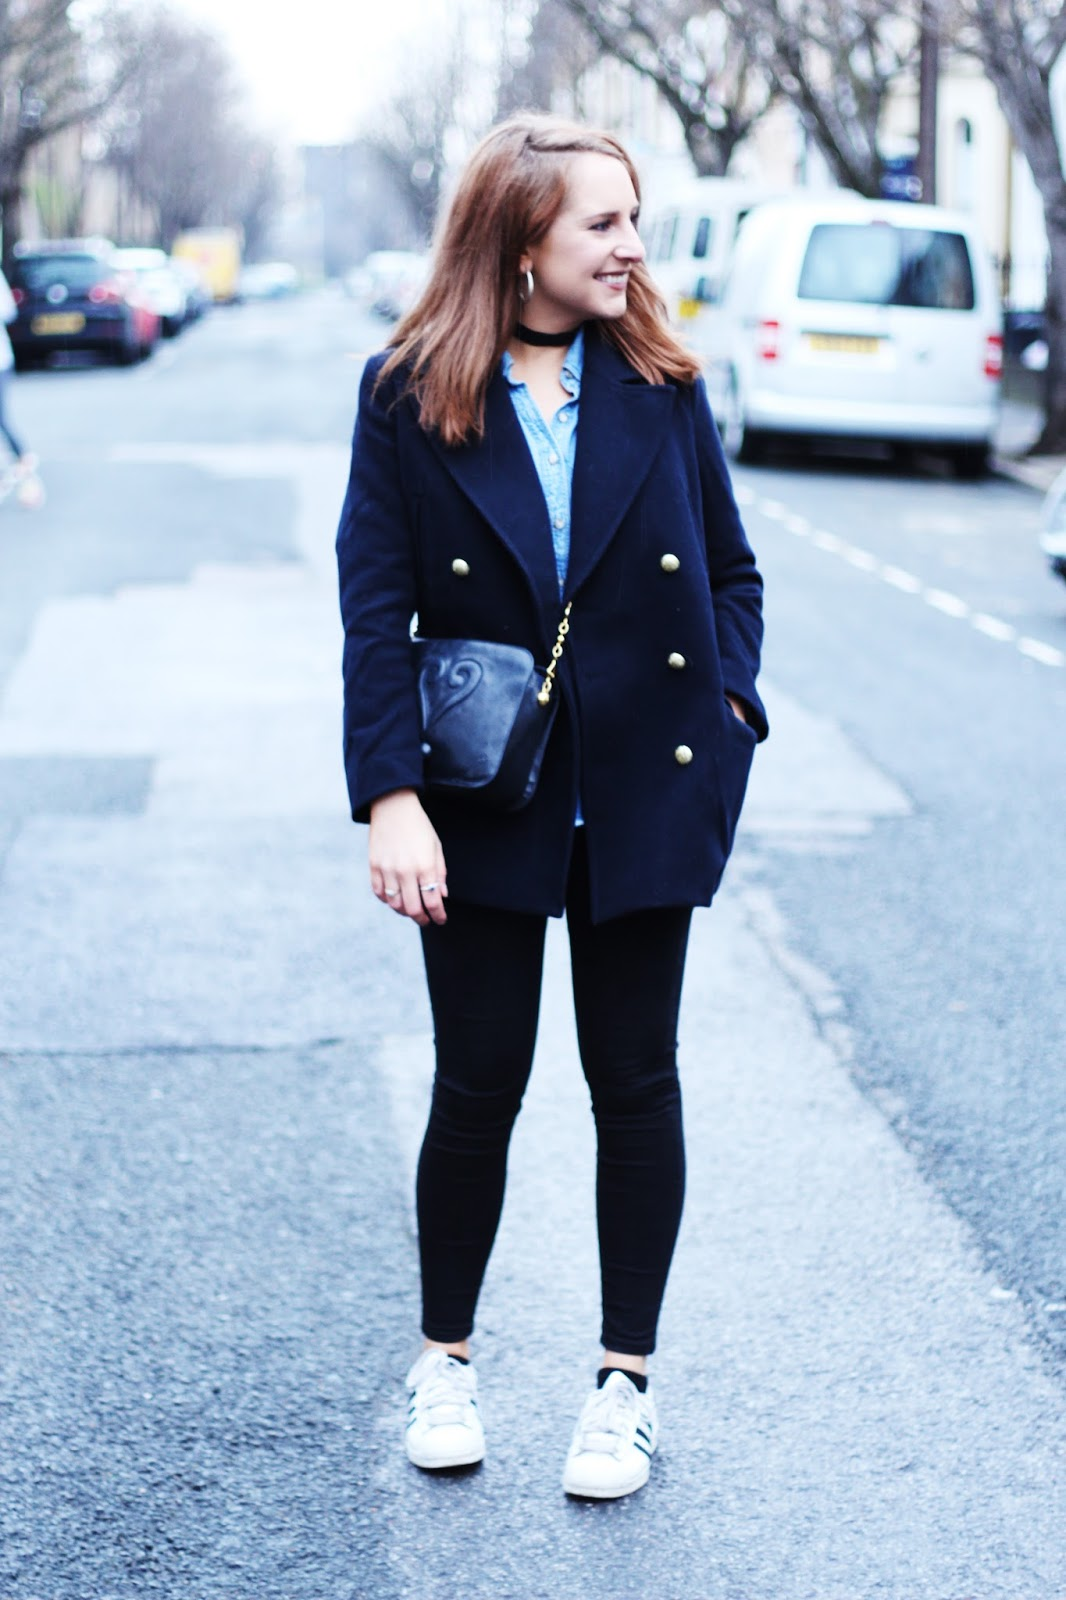 pea coat outfit